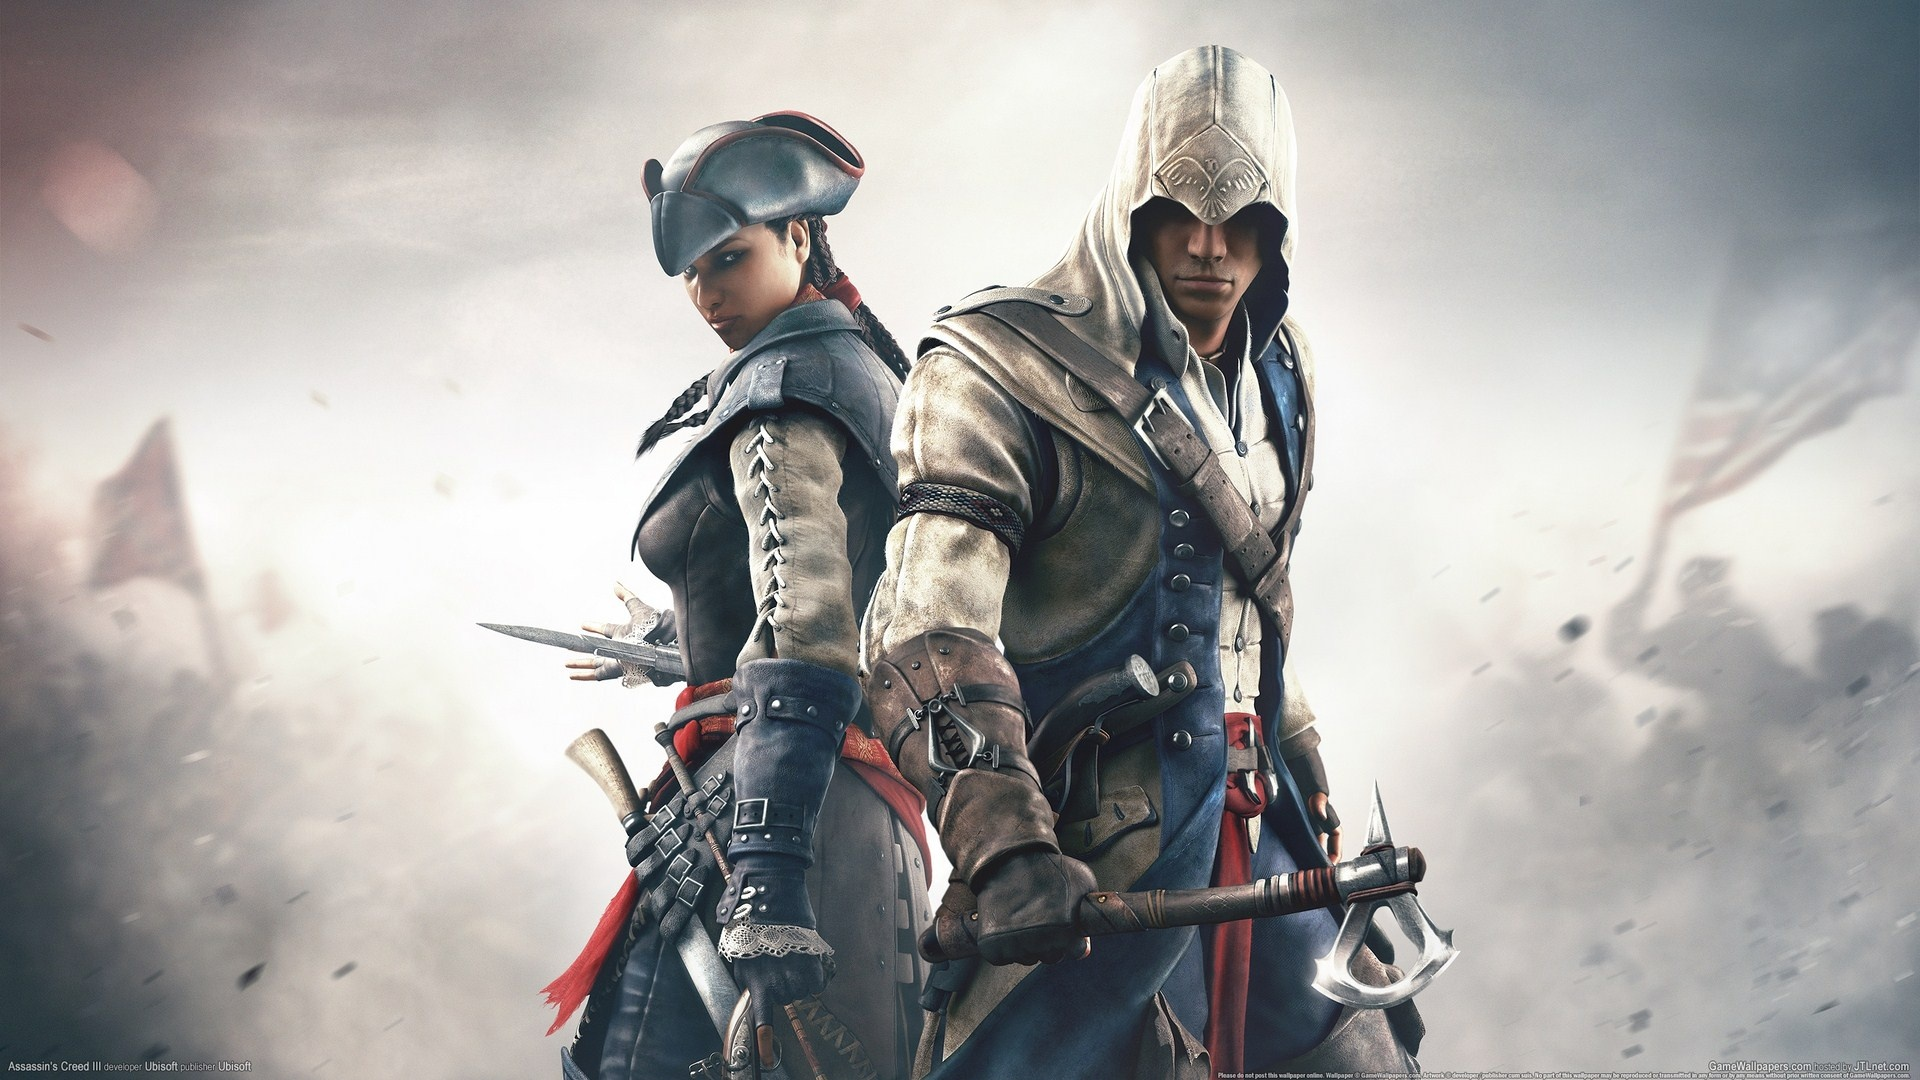 Wallpaper Assassin S Creed 3 Pc Game 1920x1080 Full Hd 2k Picture Image